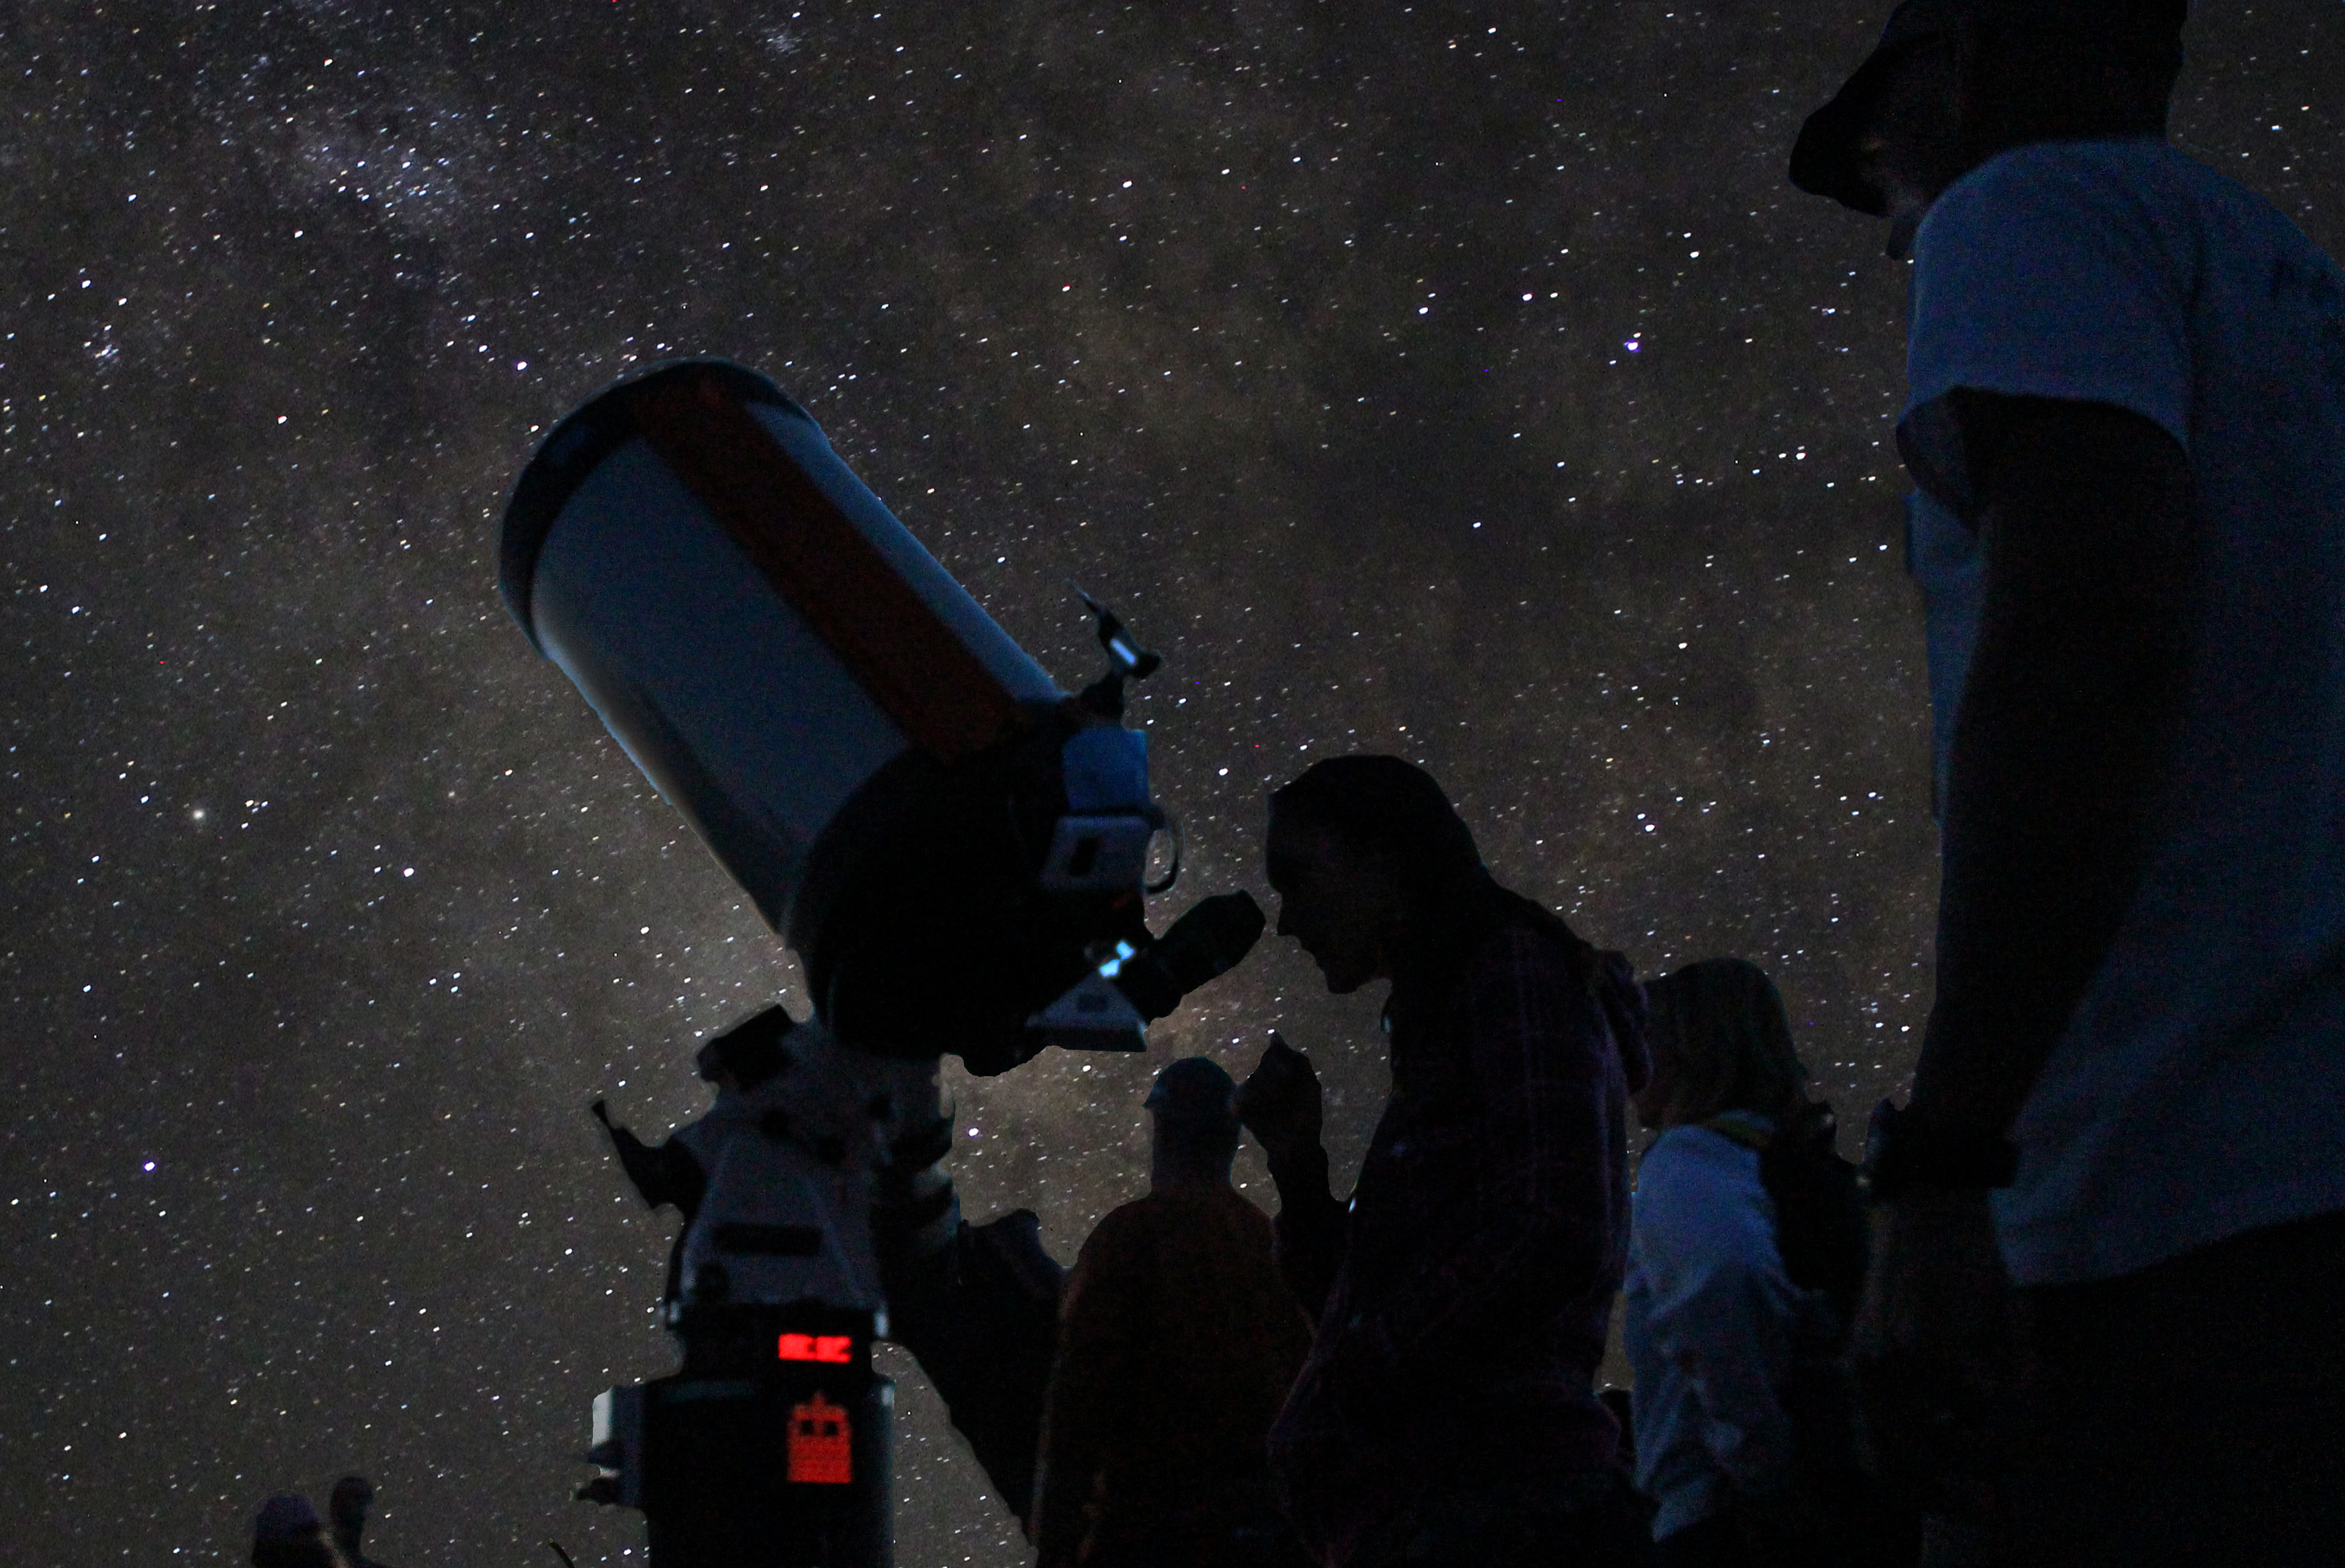 For eight days every June, park visitors and residents explore the wonders of the night sky on Grand Canyon National Park's South Rim with the Tucson Amateur Astronomy Association and on the North Rim with the Saguaro Astronomy Club of Phoenix. http://www.nps.gov/grca/planyourvisit/grand-canyon-star-party.htm Amateur astronomers from across the country volunteer their expertise and offer free nightly astronomy programs and free telescope viewing. NPS/M.Quinn